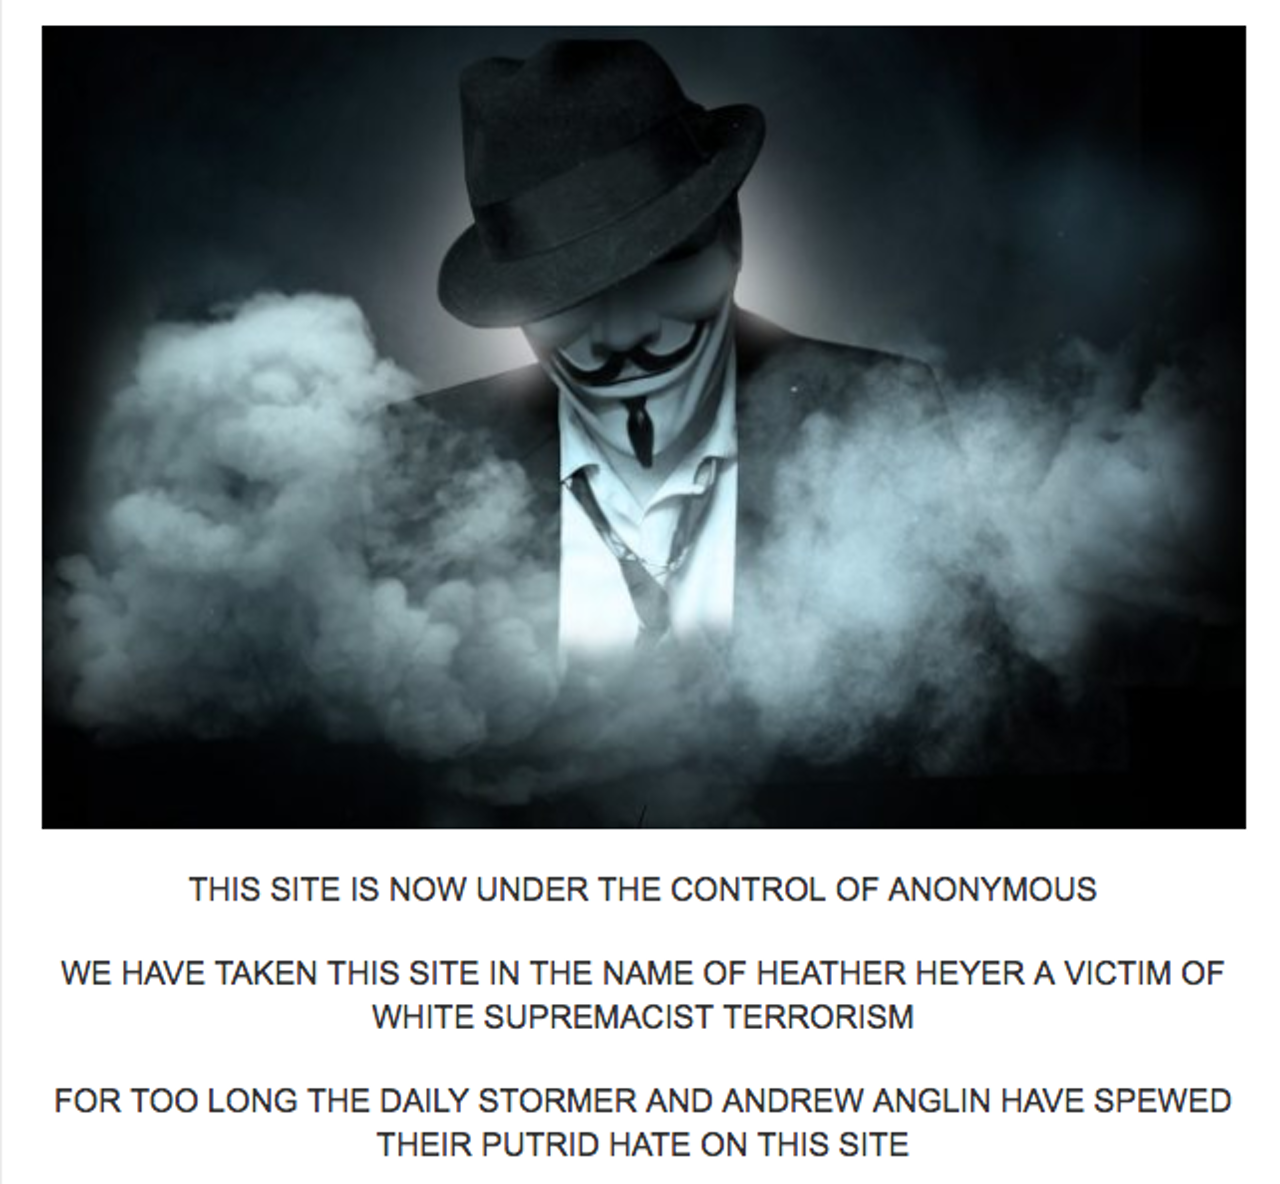 Screenshot from The Daily Stormer.